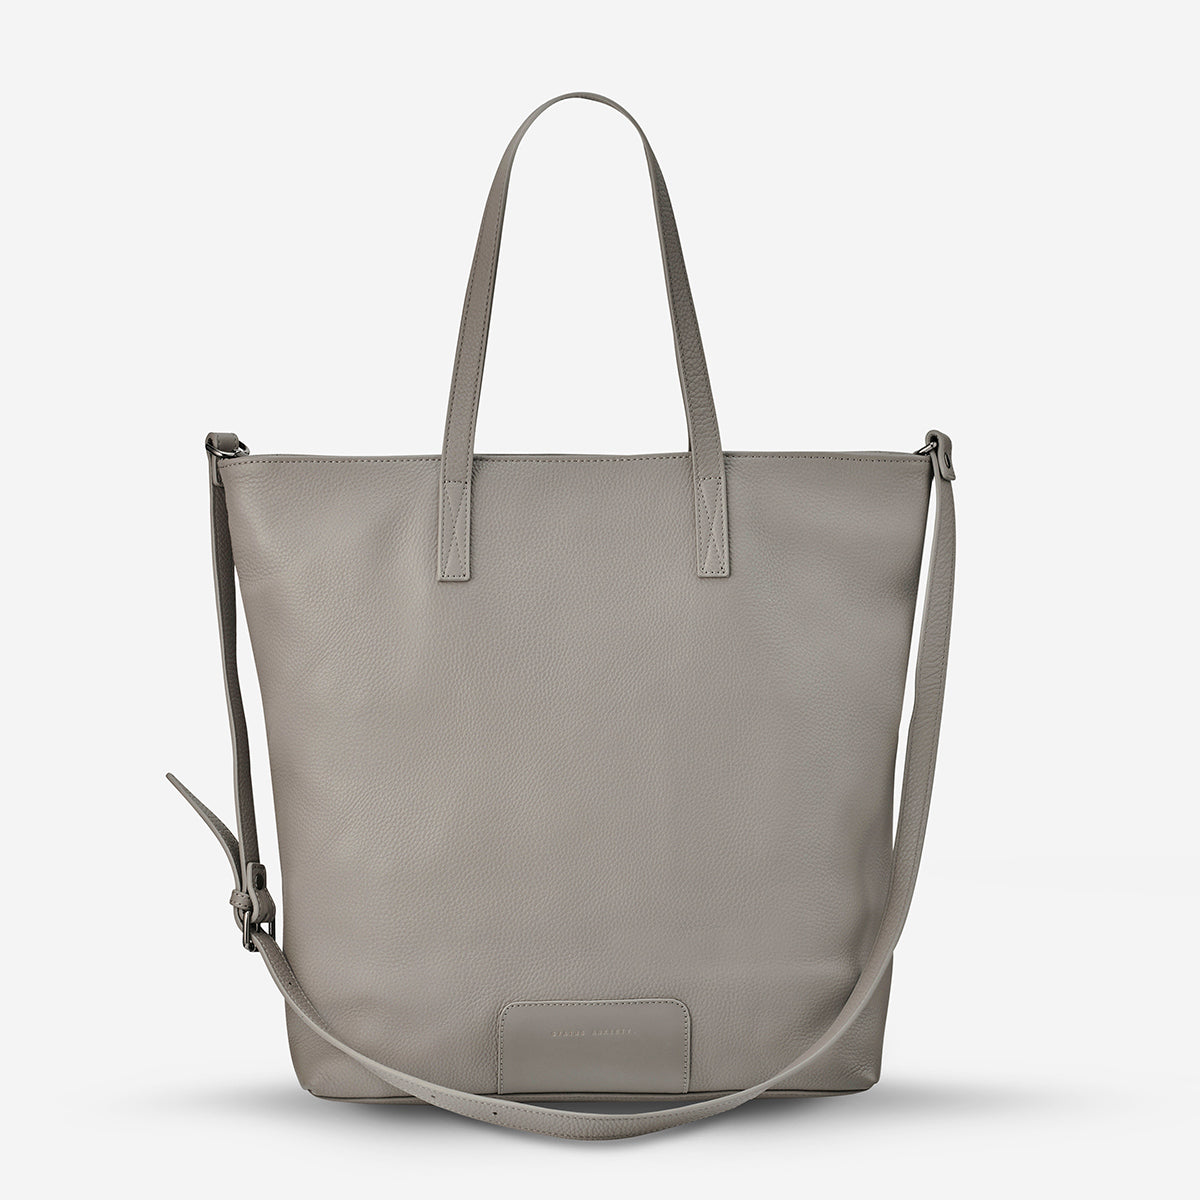 Status Anxiety Fire On The Vine Women's Large Leather Tote Bag - Light Grey